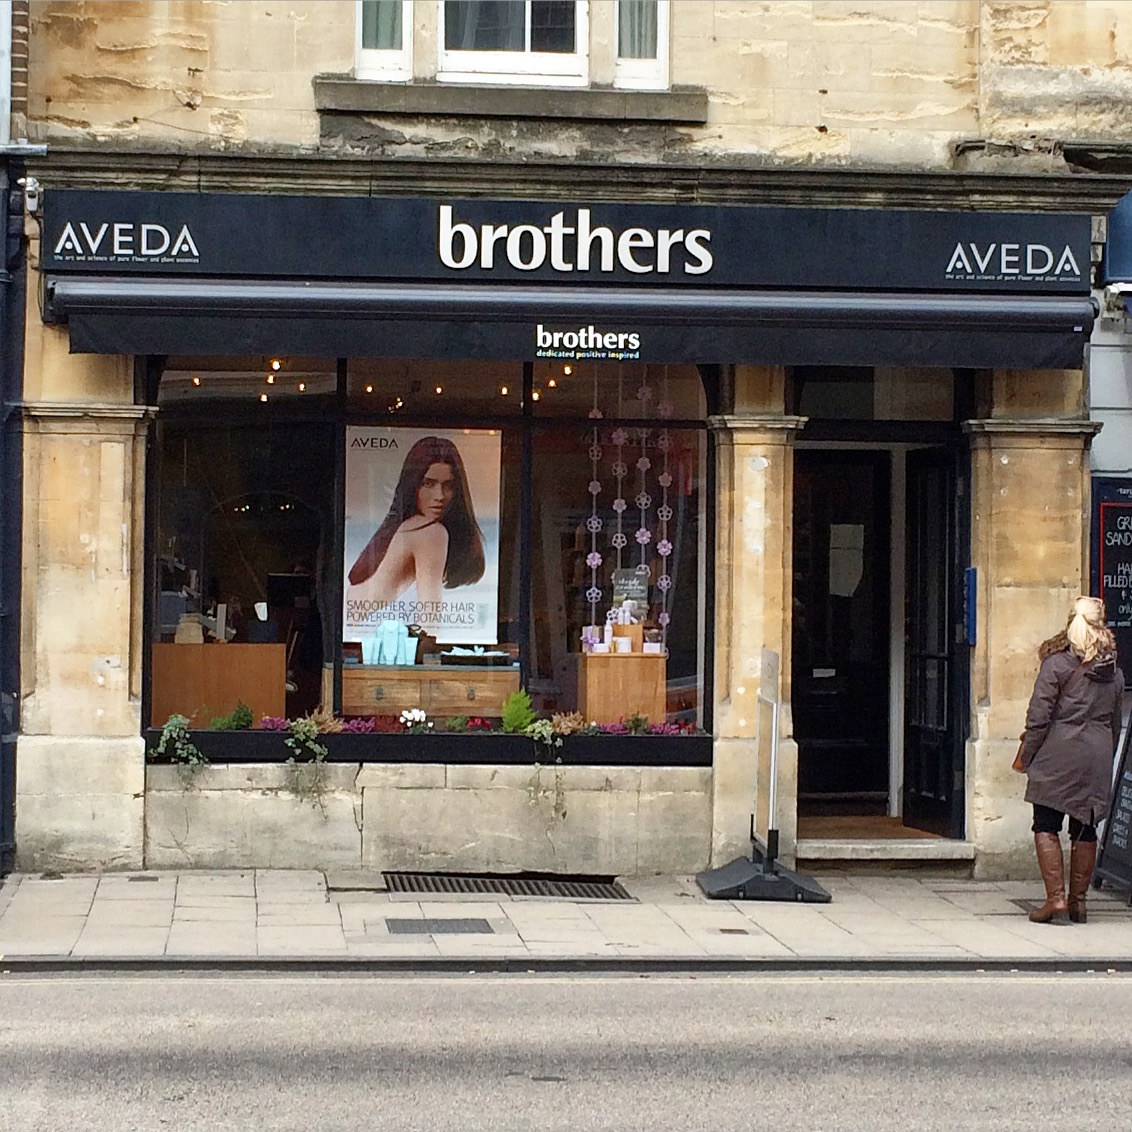 A few weeks after Mothers Day we were in Oxford for the Literary Festival and noticed our garlands were still up in the window!